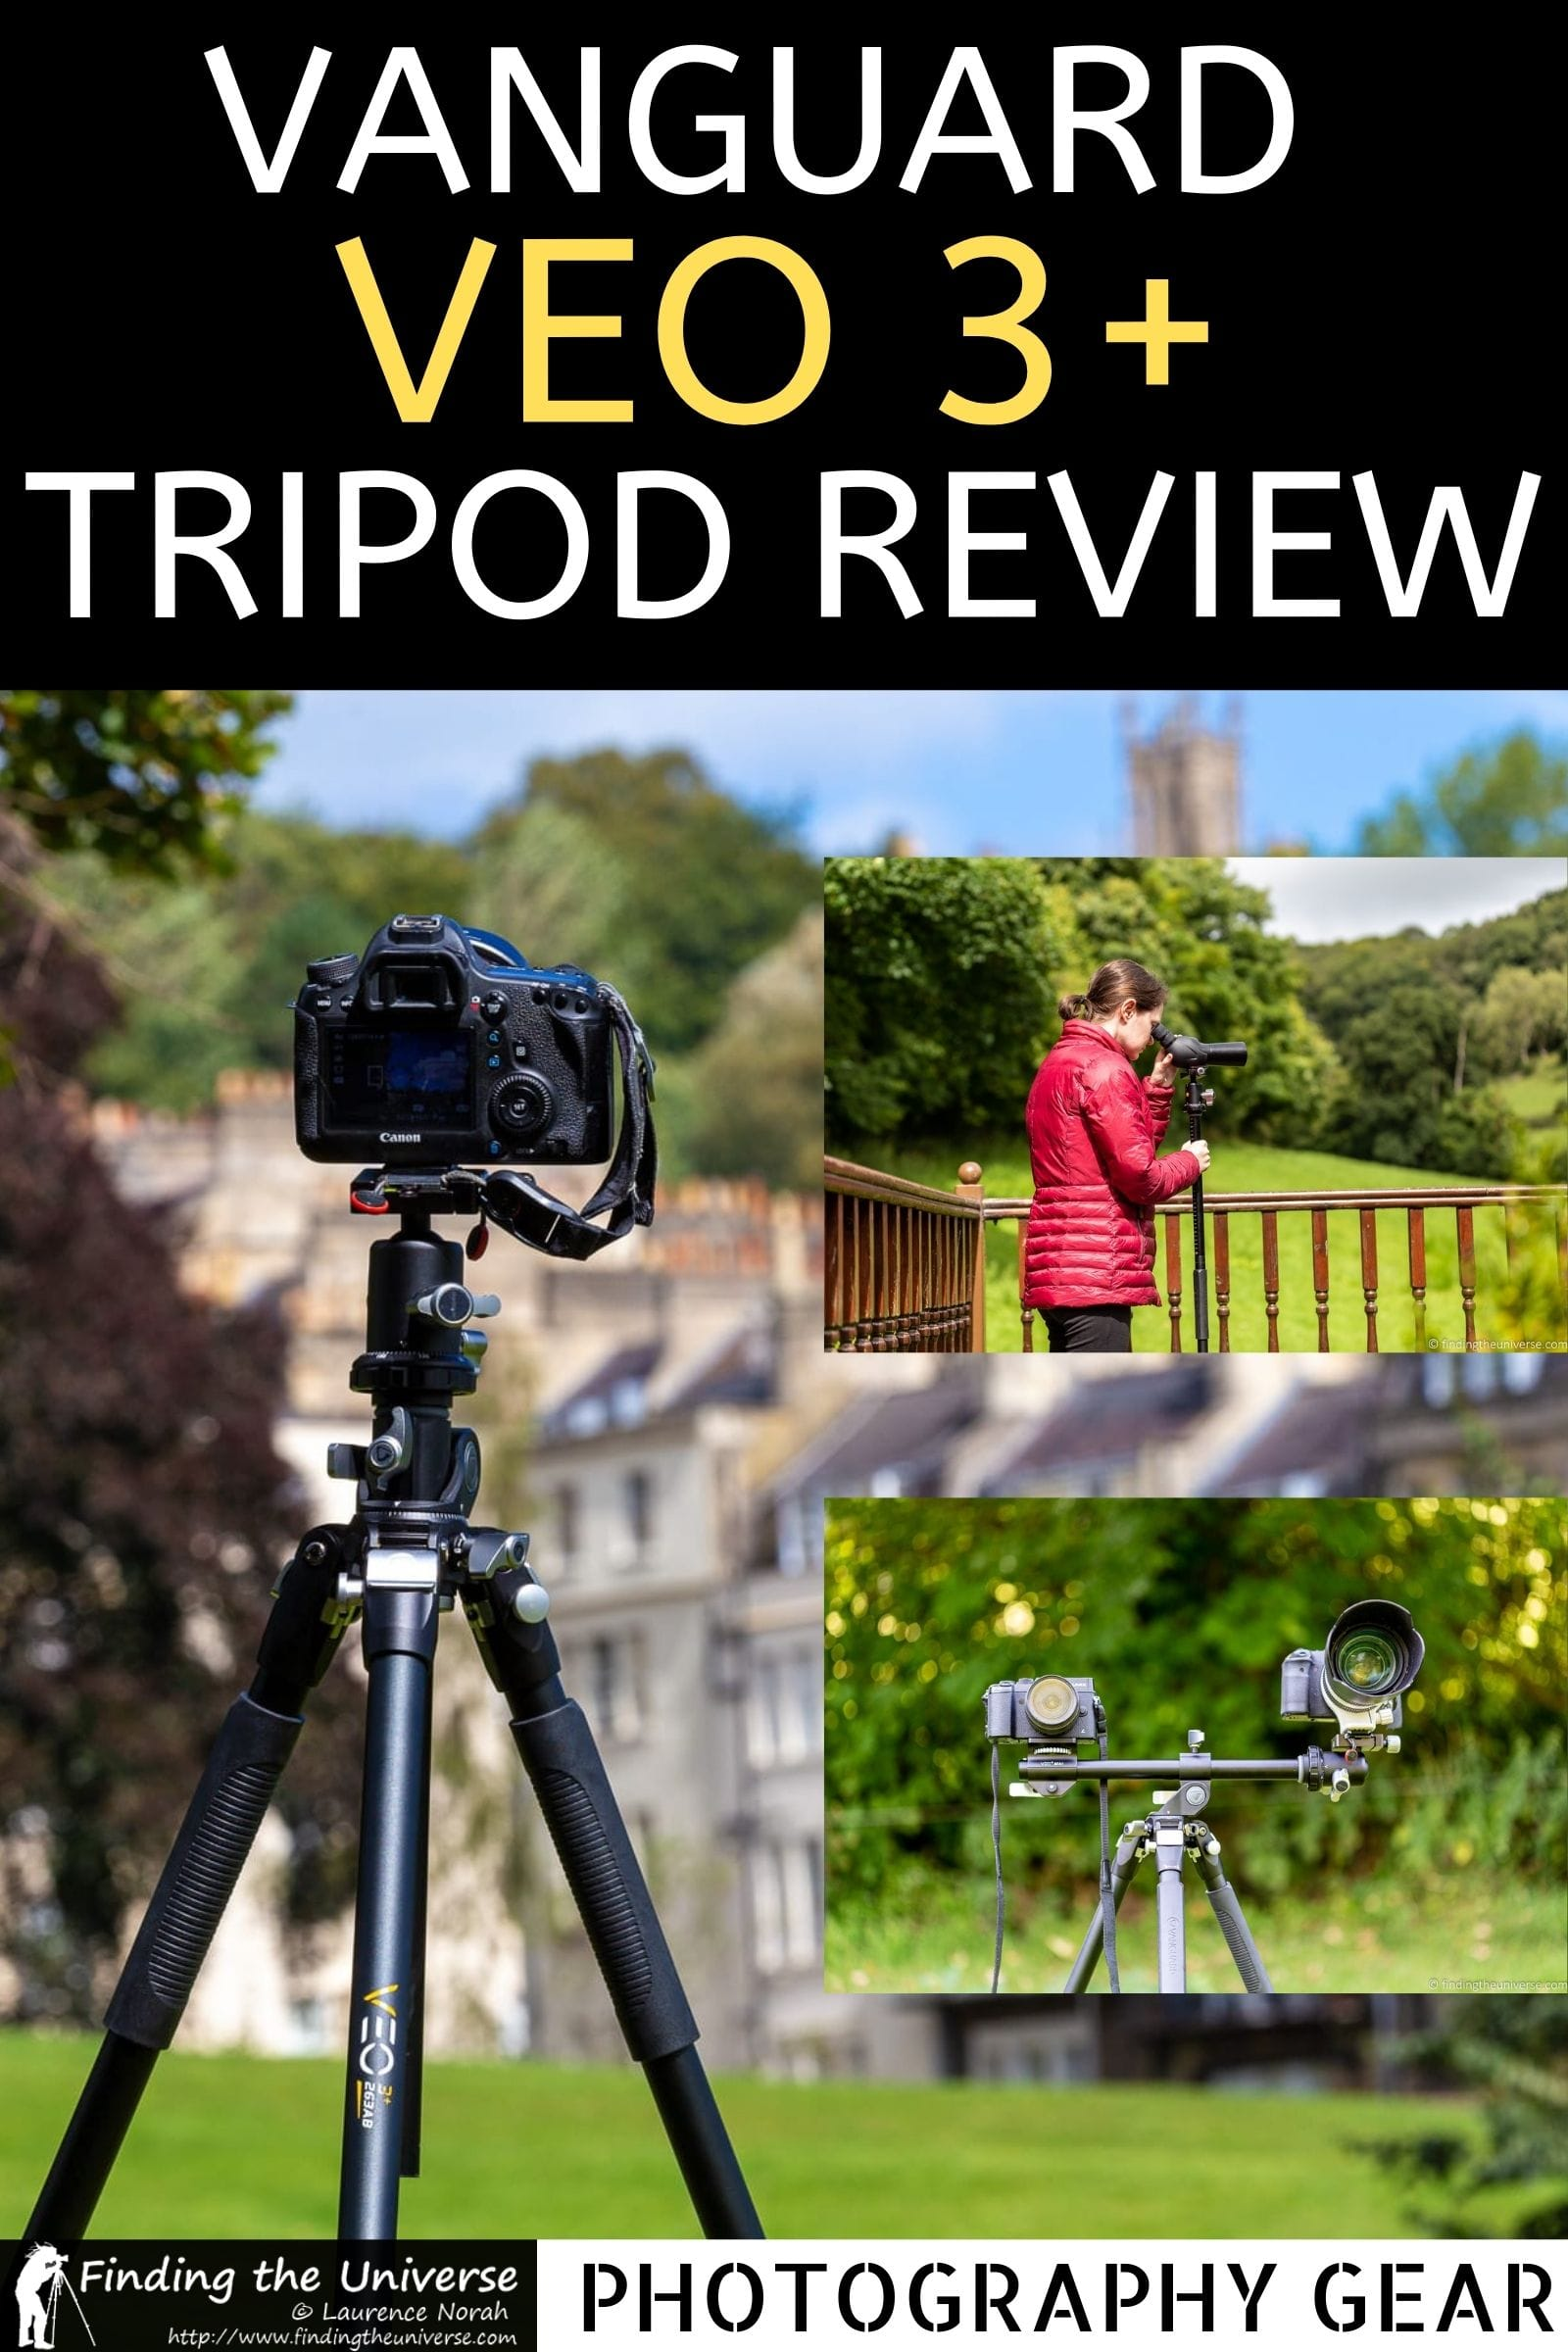 A detailed review of the Vanguard VEO 3+ 263AB Tripod Review. Key features, what's good about the tripod and who it's for.